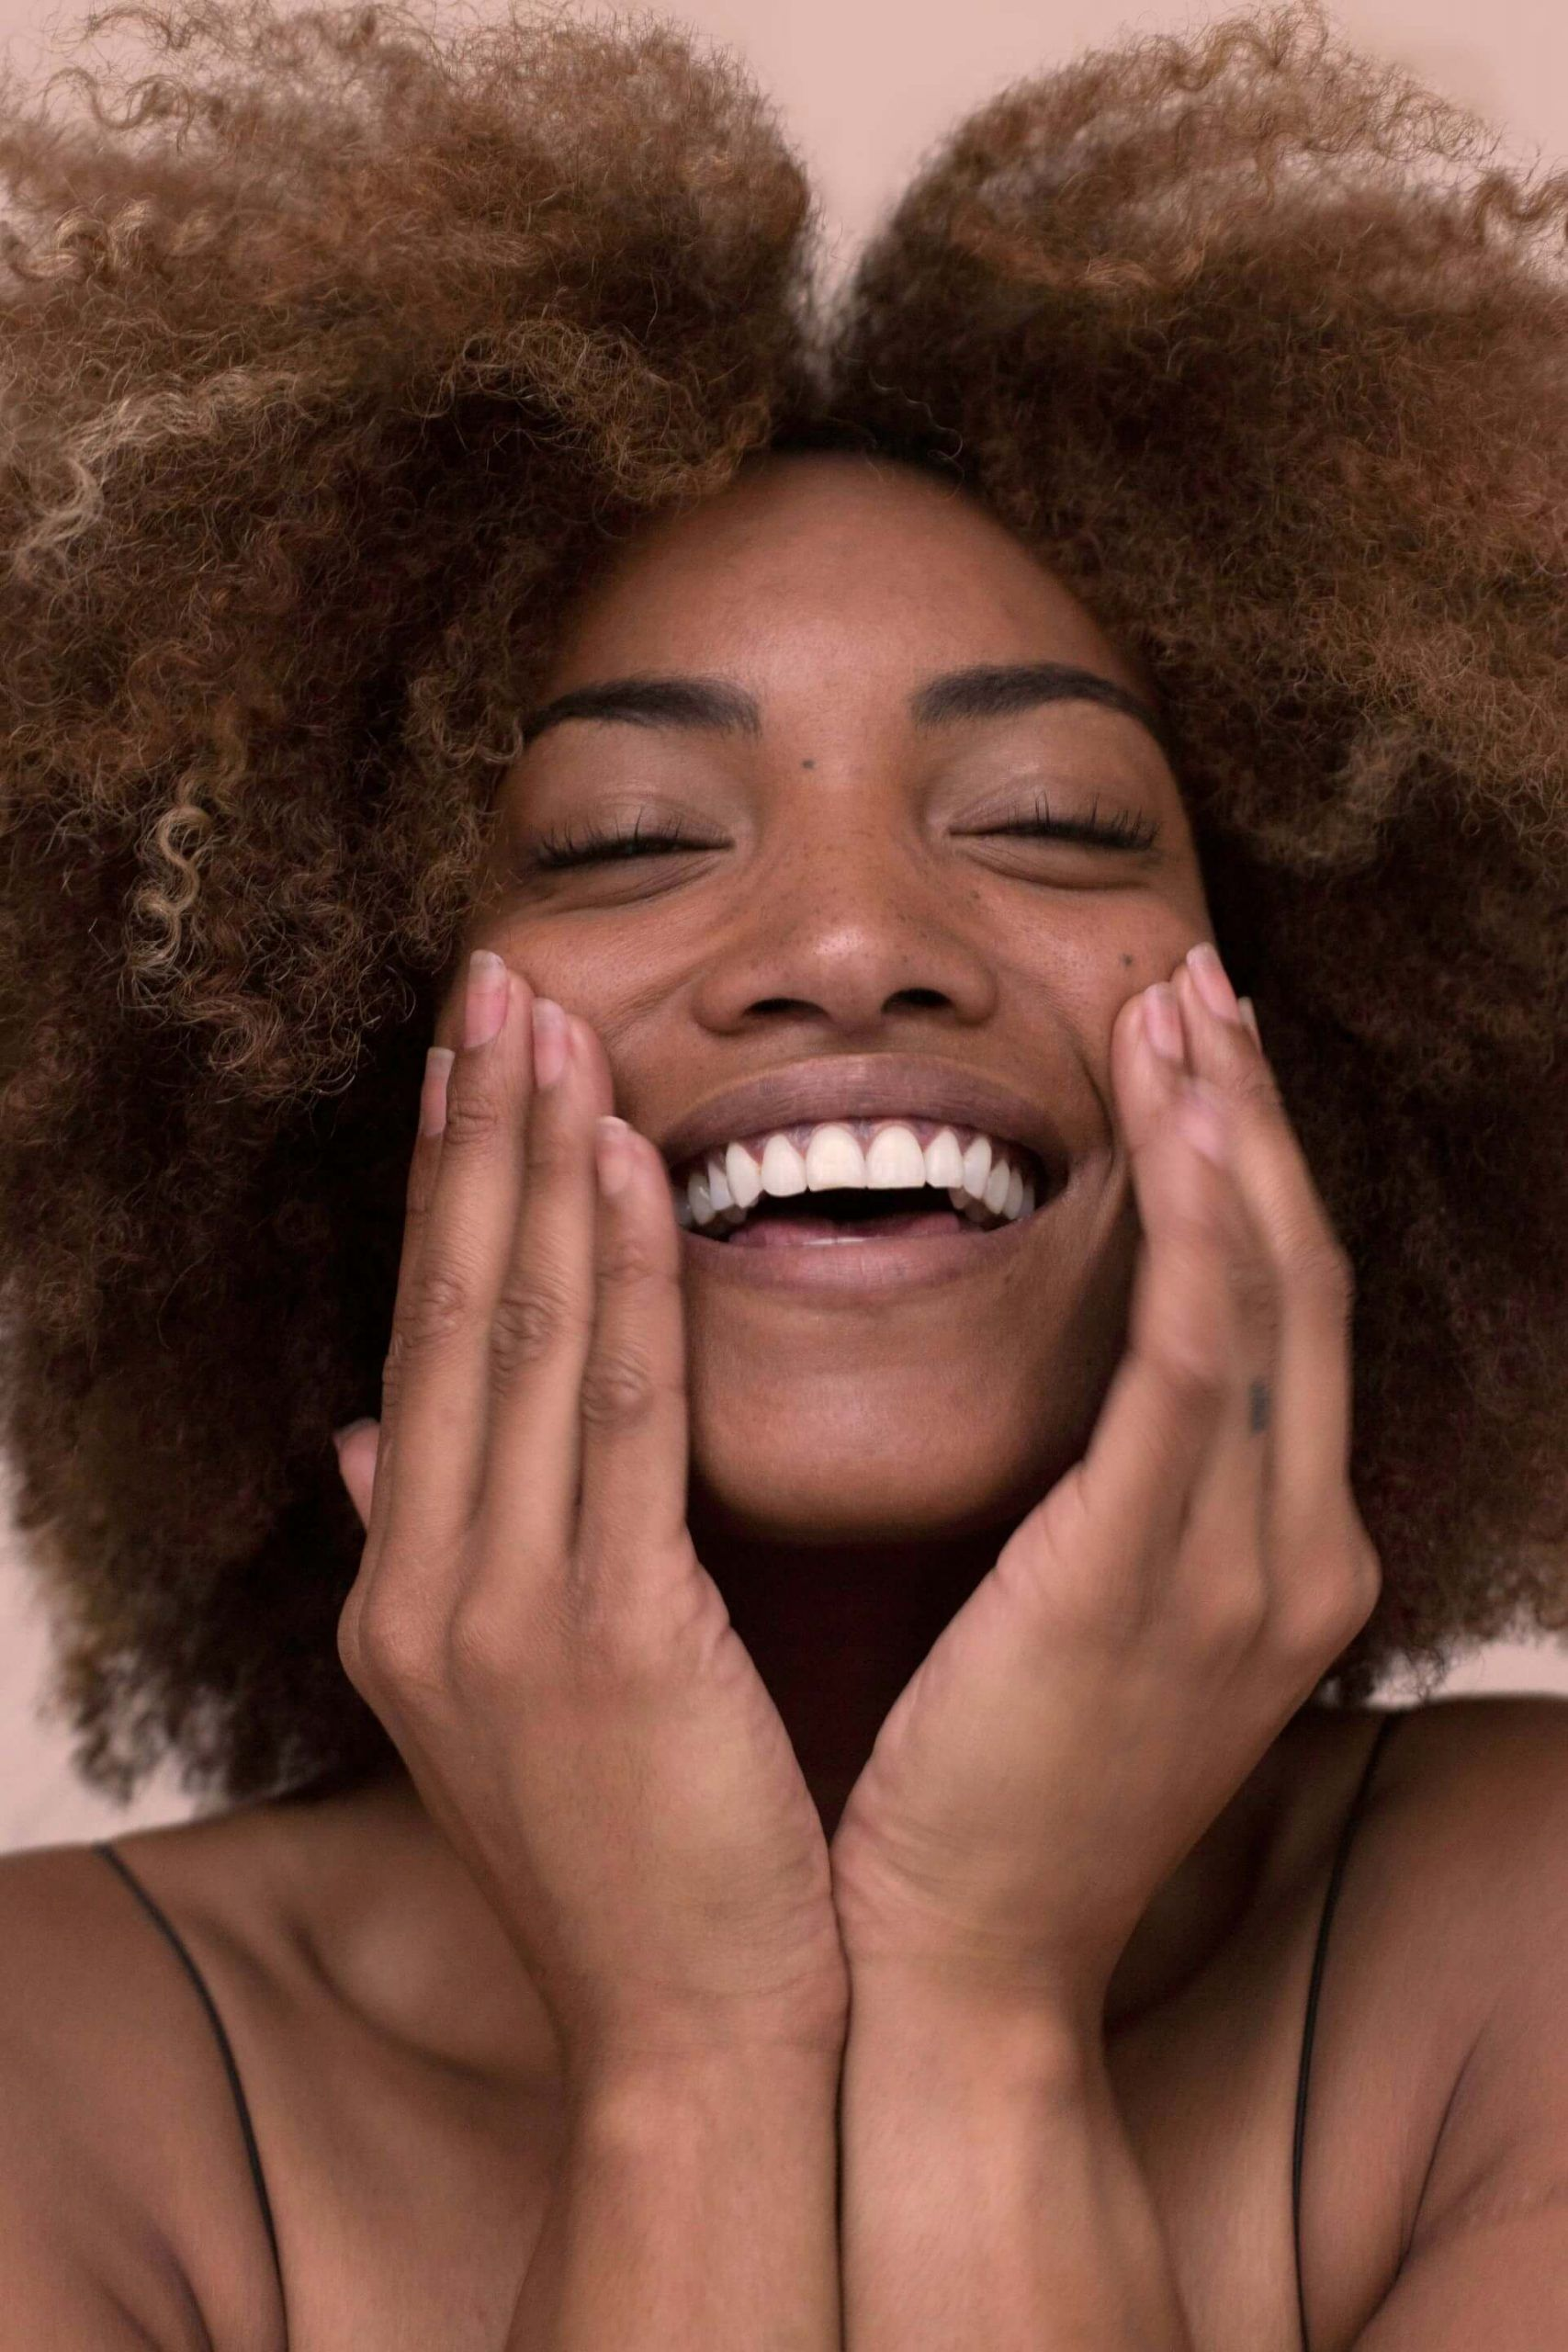 brown girl massaging her face and smiling